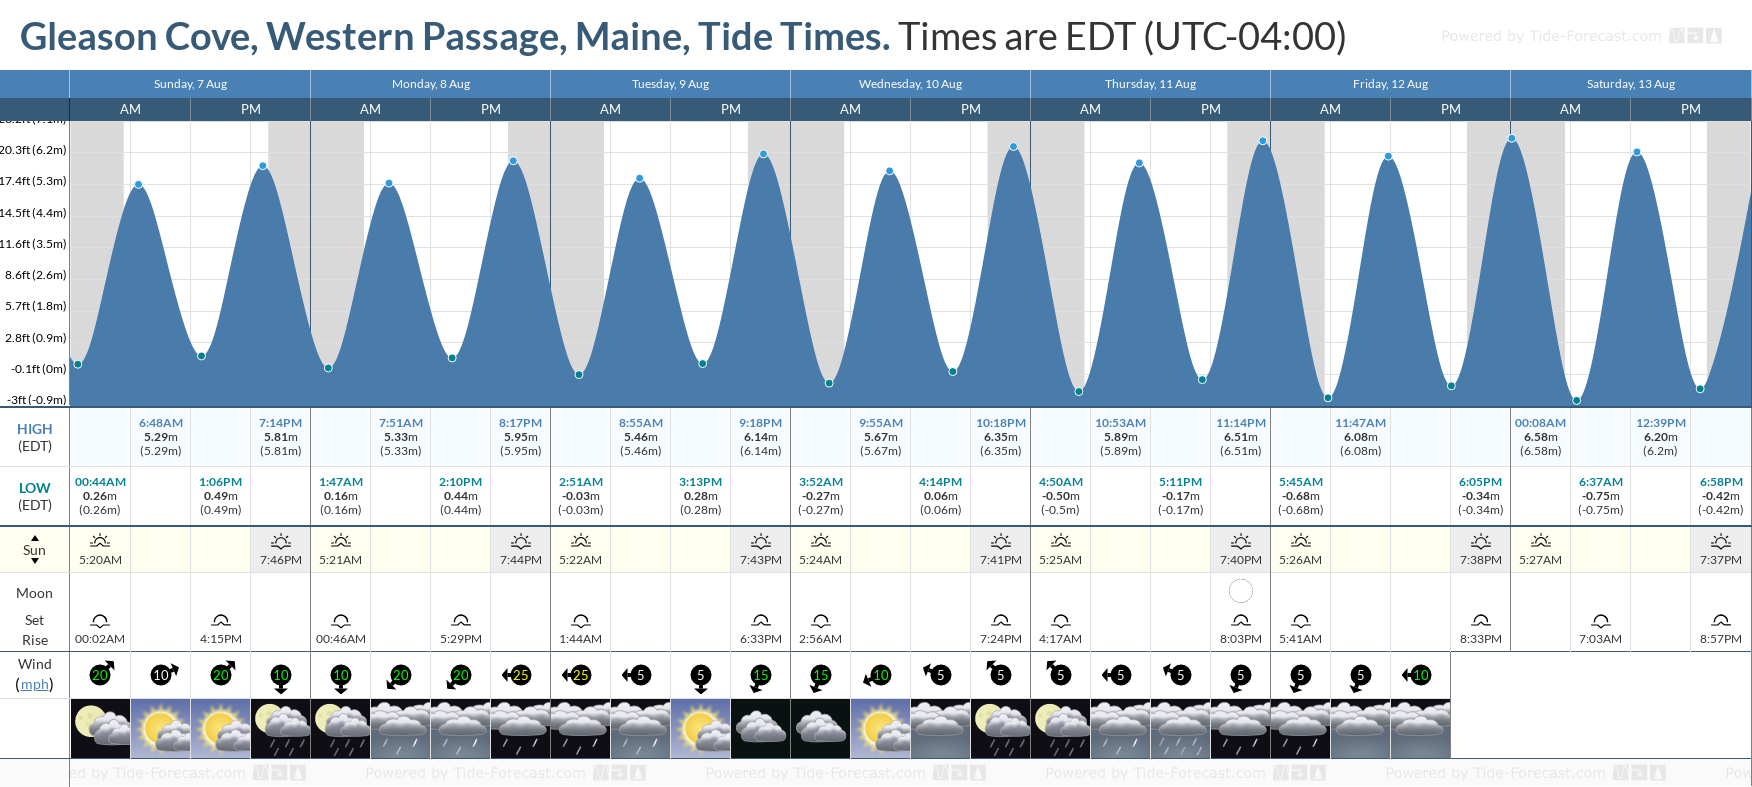 Gleason Cove, Western Passage, Maine Tide Chart including high and low tide tide times for the next 7 days